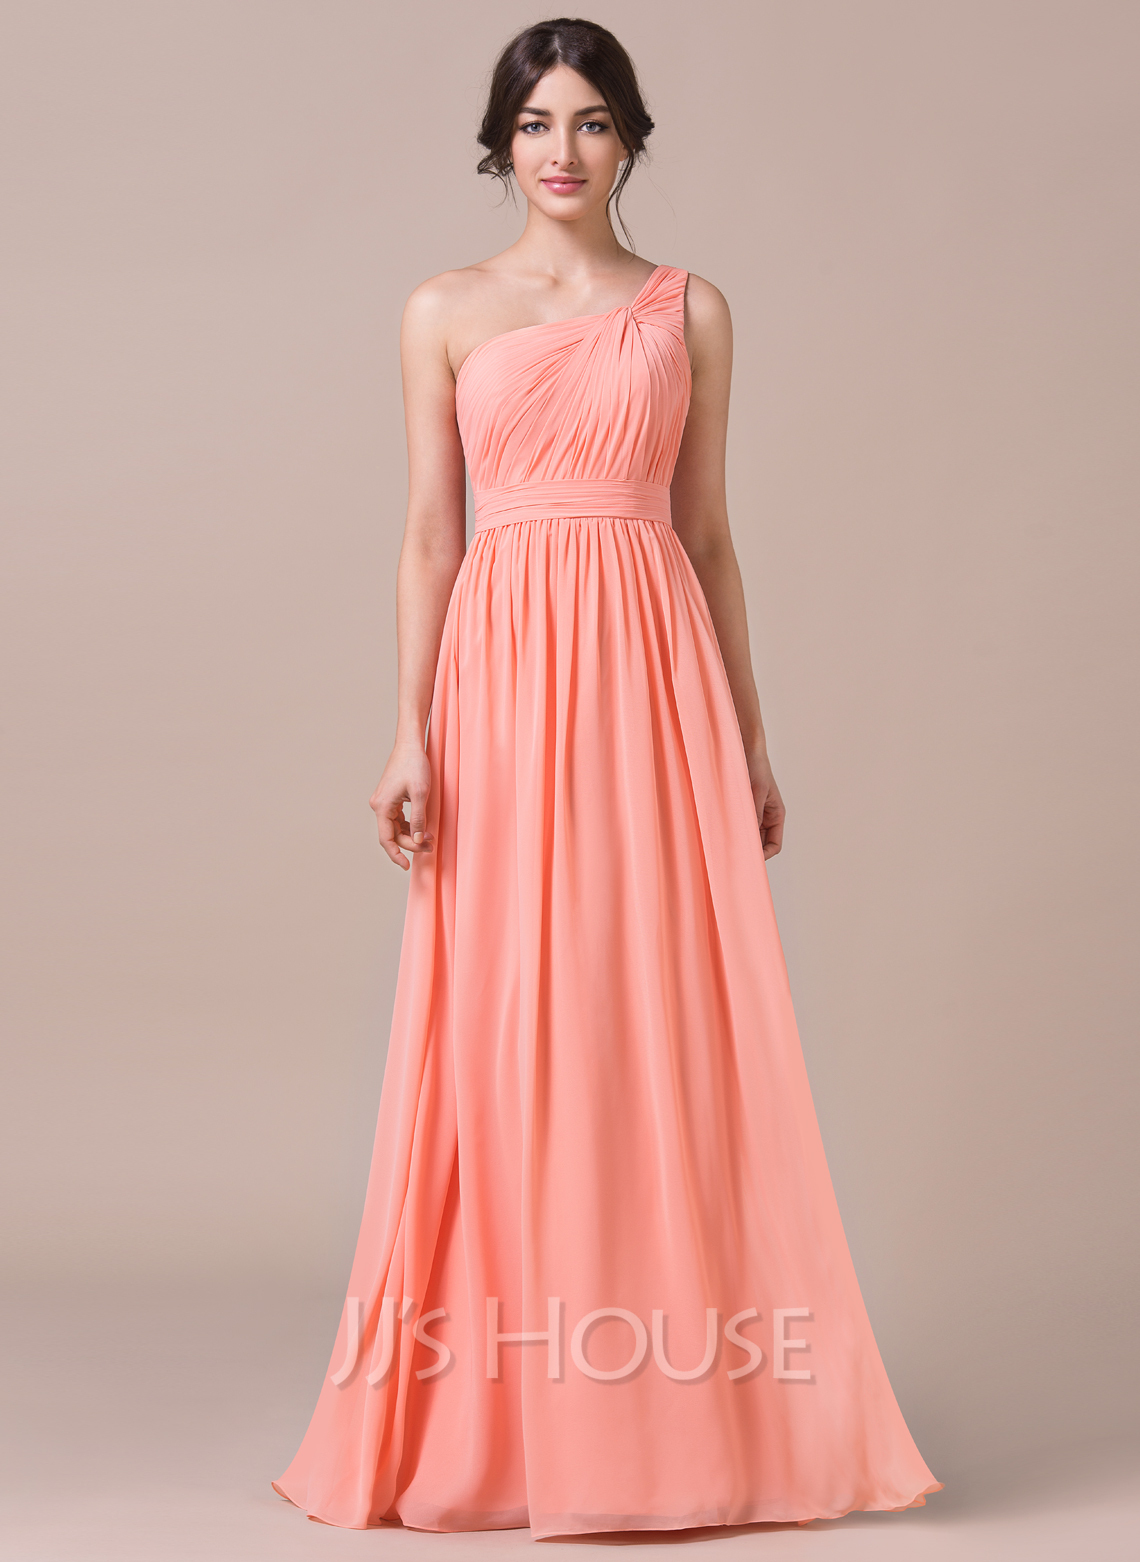 A Line Princess One Shoulder Floor Length Chiffon Bridesmaid Dress With Ruffle Loading Zoom